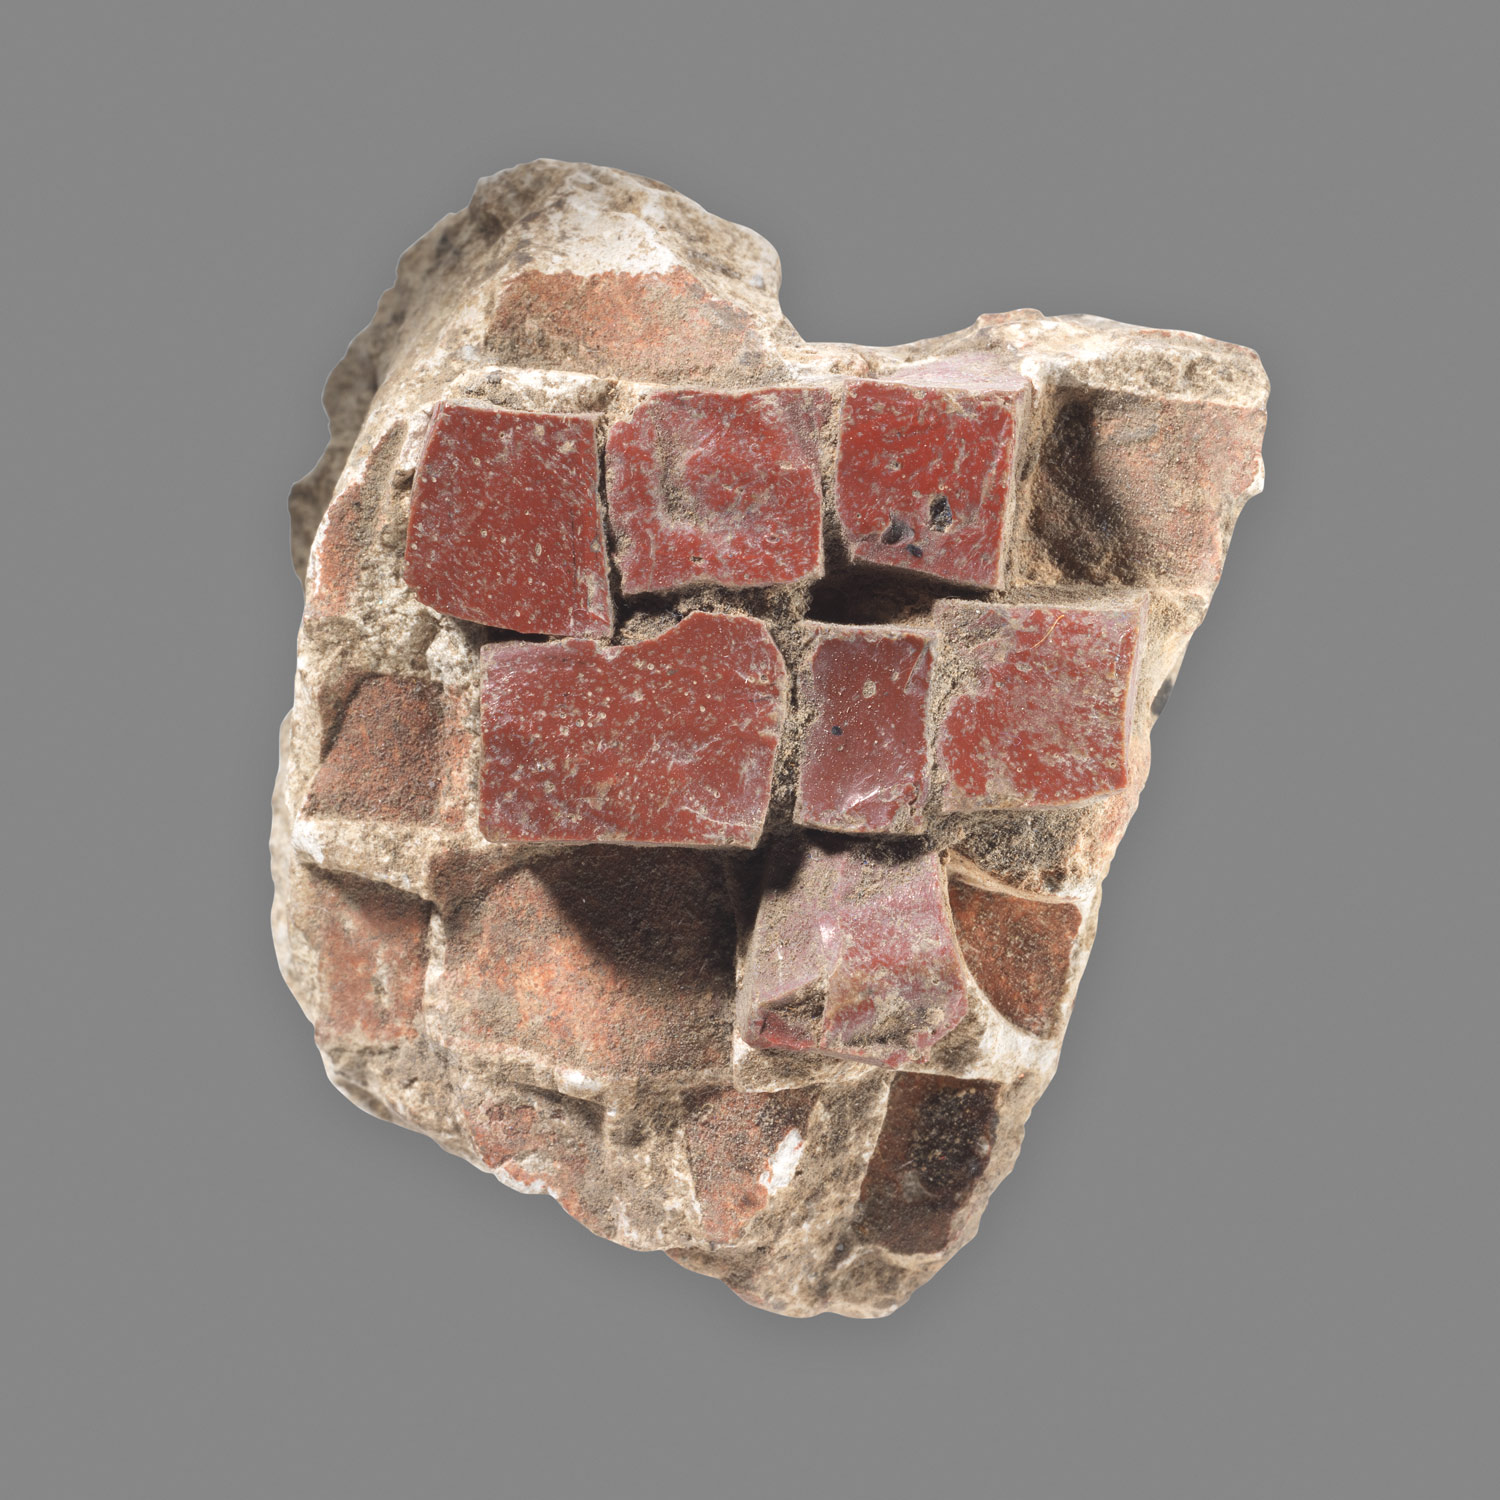 Mosaic fragments